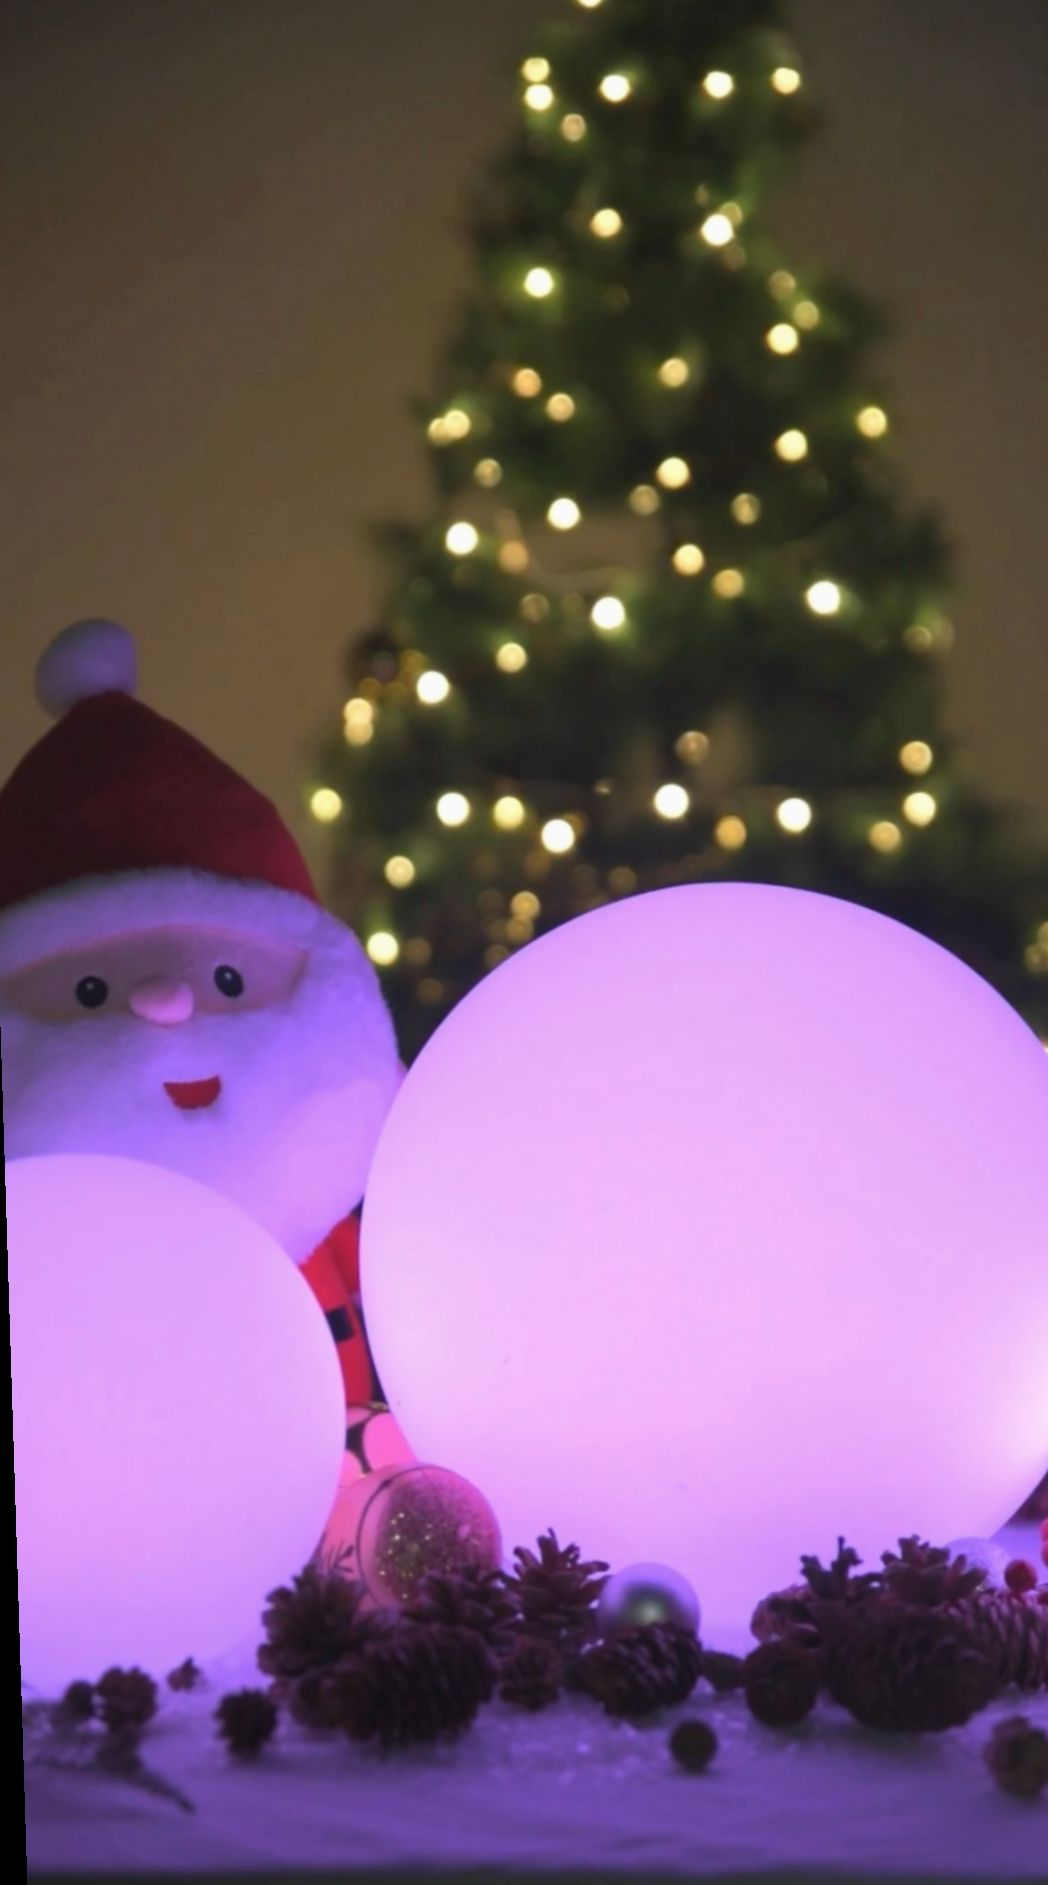 7 Christmas Decorations Videos Lights In 2020 Christmas Decorations Christmas Home Beautiful Christmas Decorations